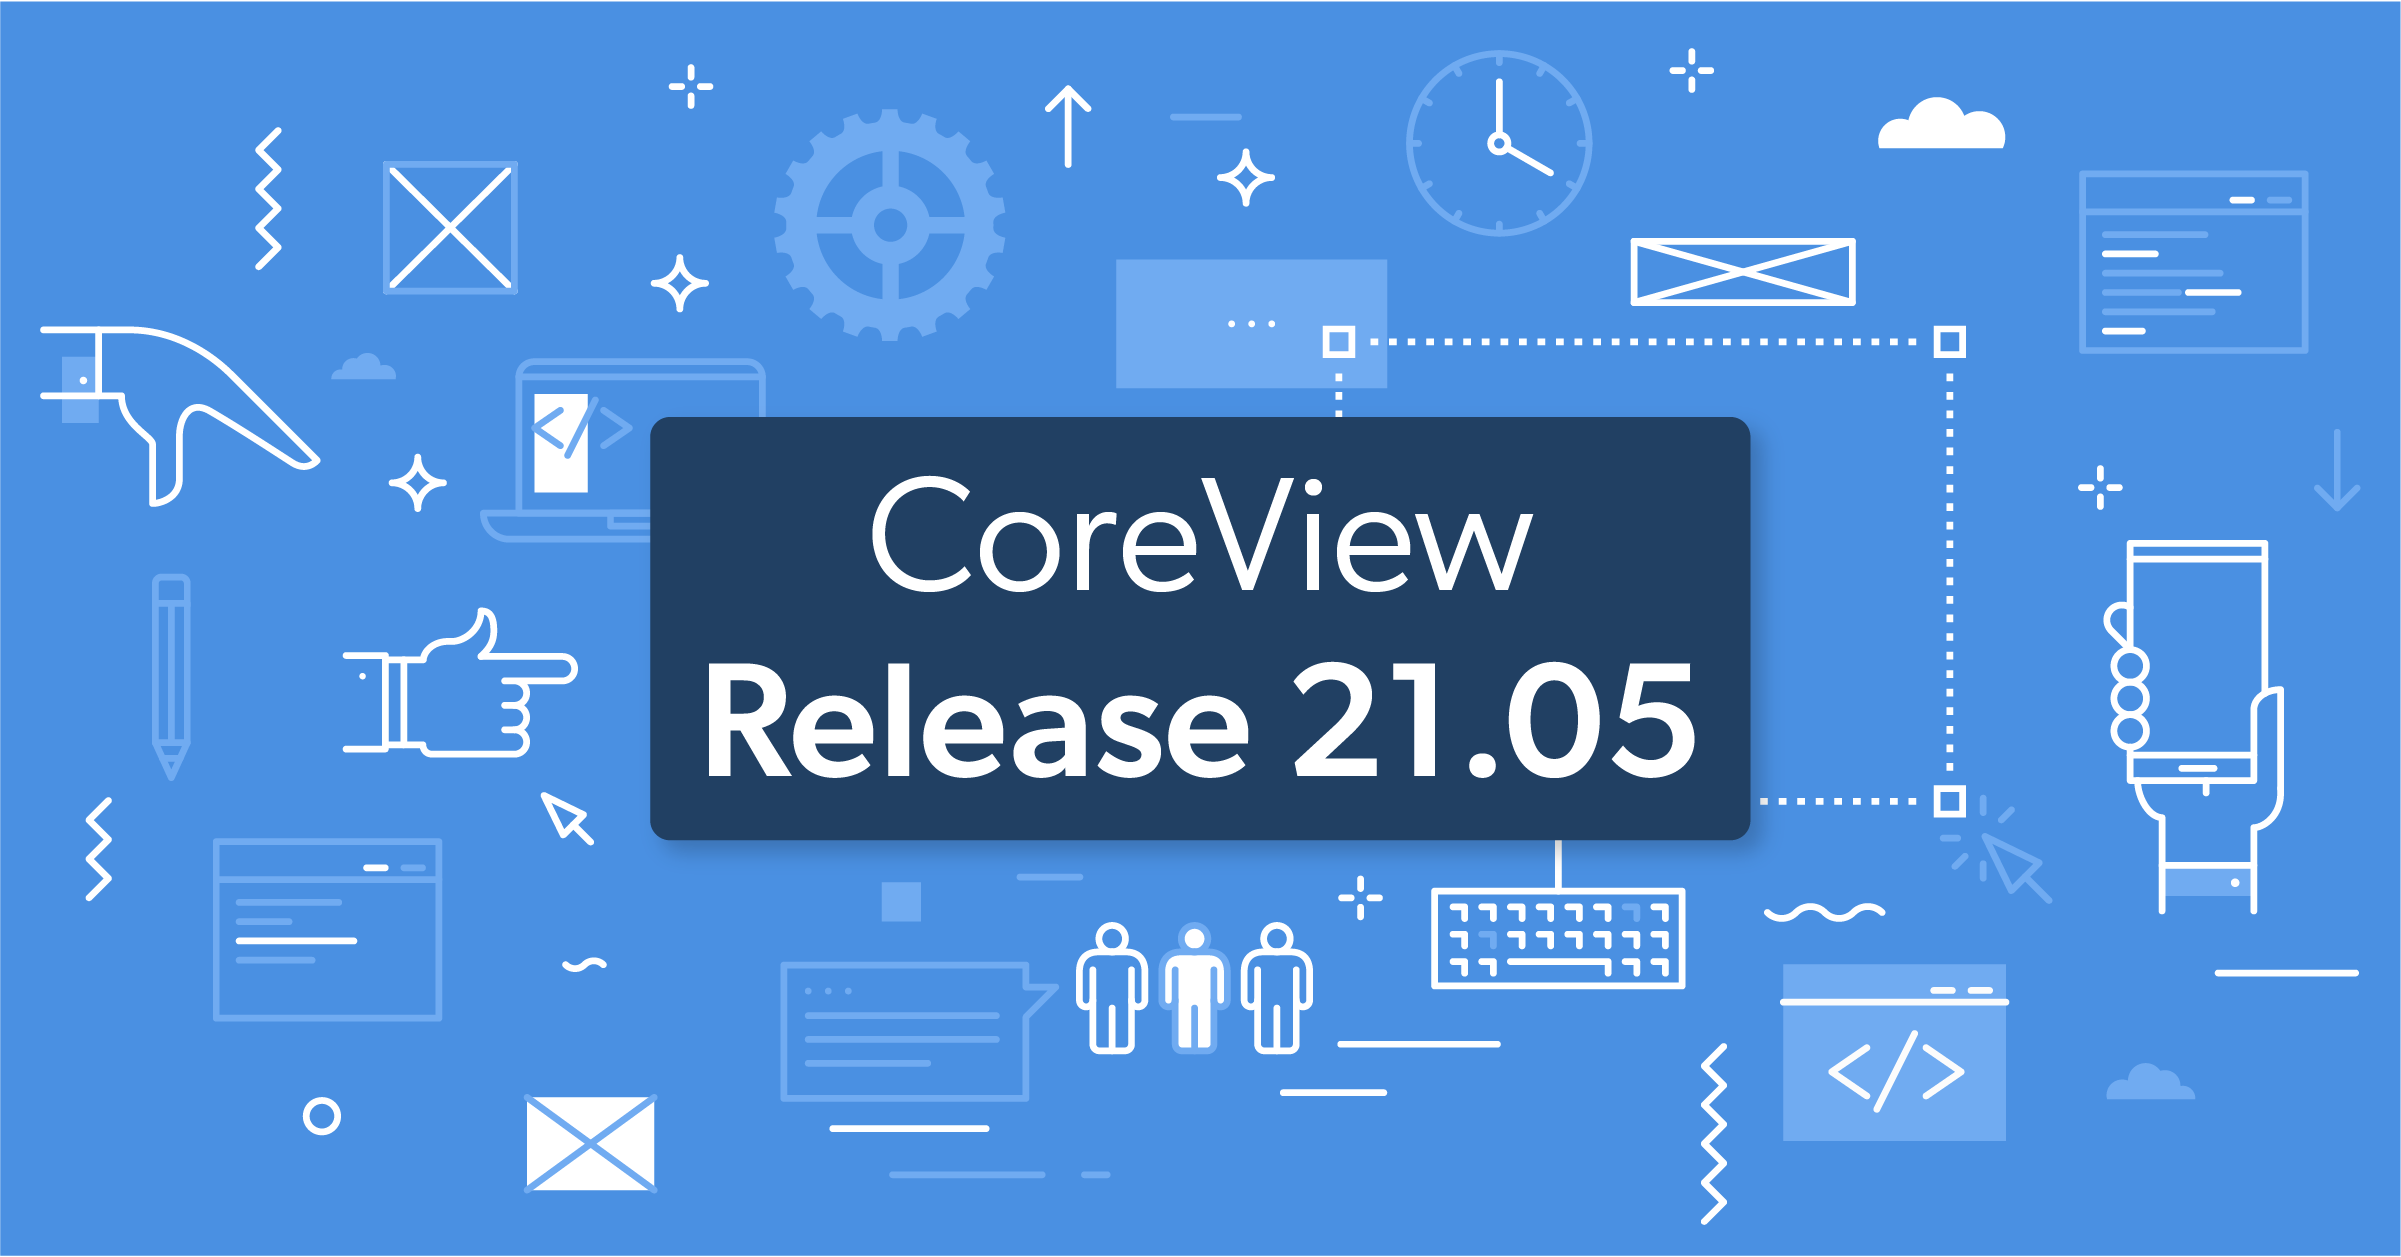 CoreView Release 21.05